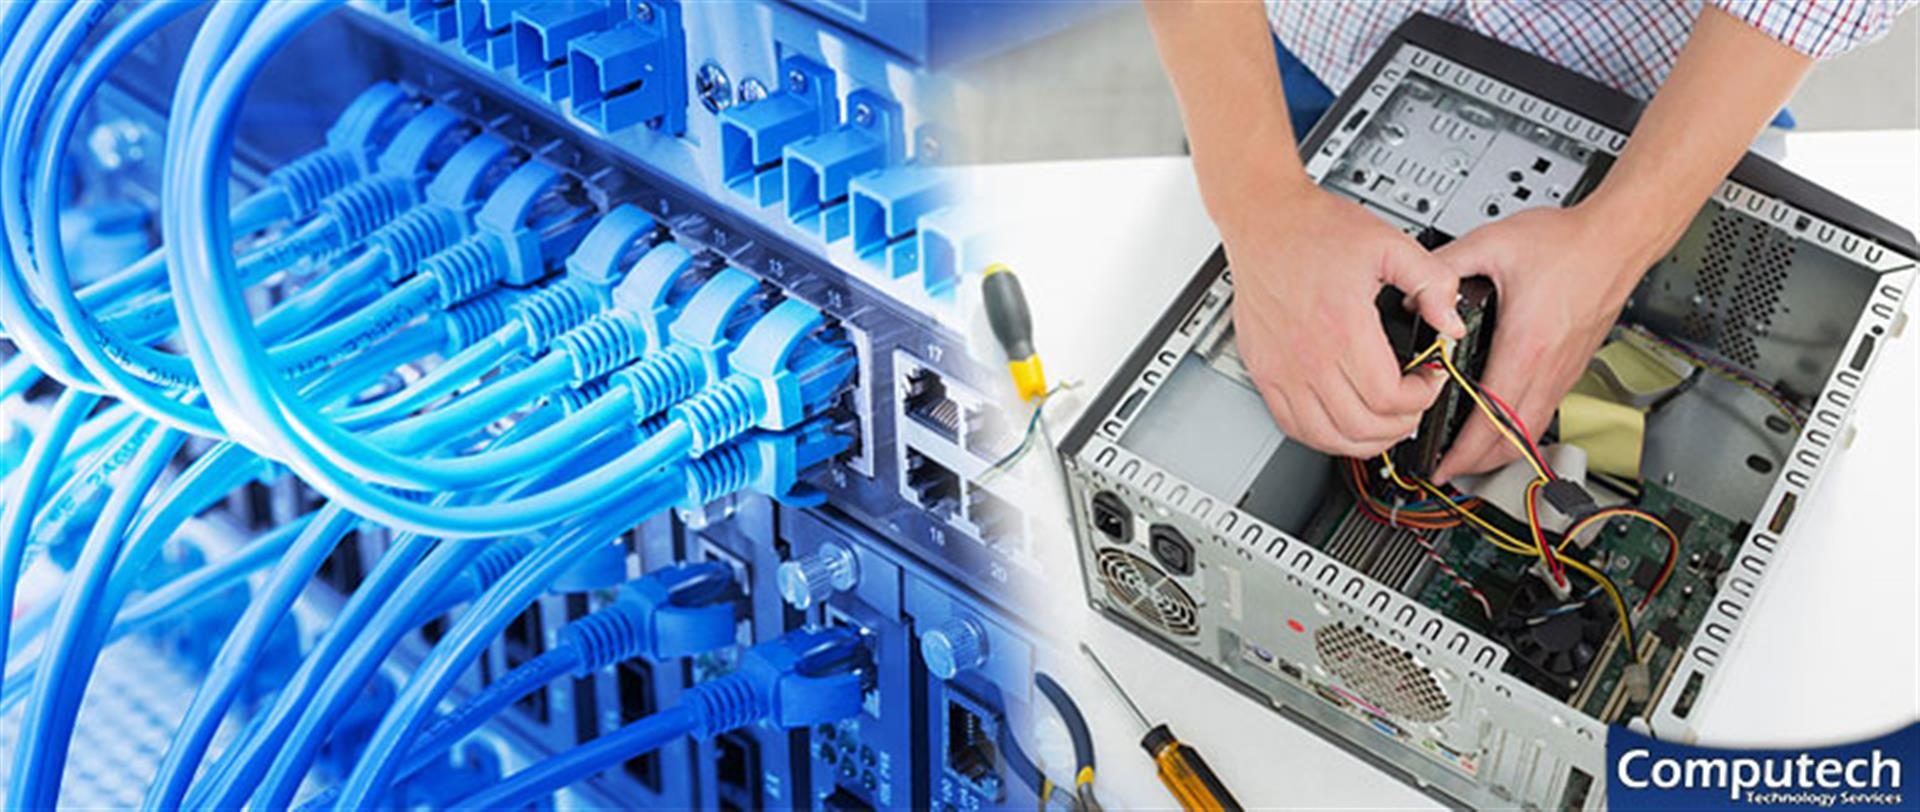 Camilla Georgia Onsite PC & Printer Repairs, Networking, Voice & Data Cabling Contractors